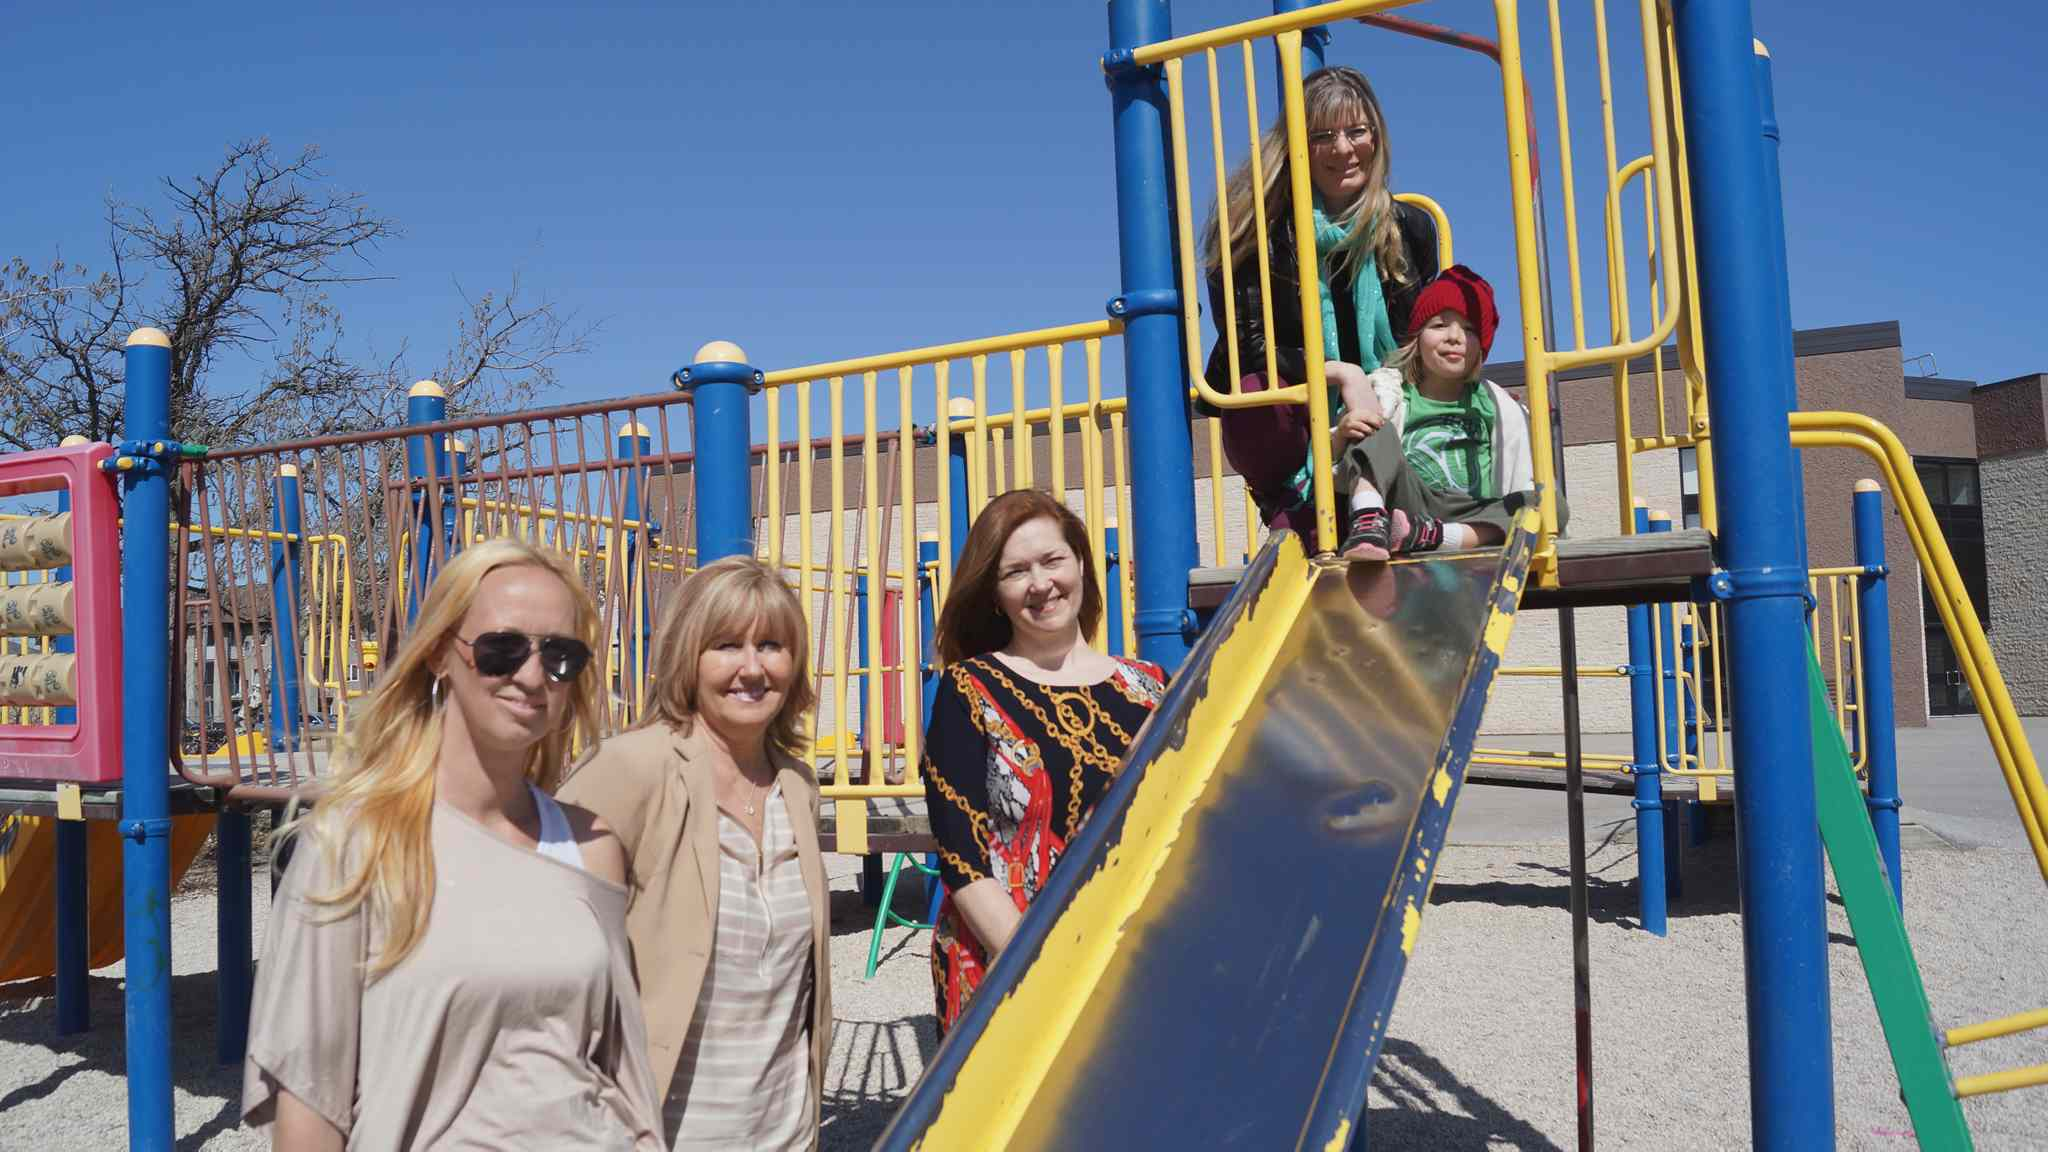 The Dalhousie Parent Advisory Council is hoping to raise over $209,000 to replace the decaying play structure and create a brand new playground behind Dalhousie School (262 Dalhousie Dr.). From left: Jaime Webster, principal Marina Wilson, vice-principal Jennifer Bracken, Suzanne Pothe and daughter Justine Pothe, 3.